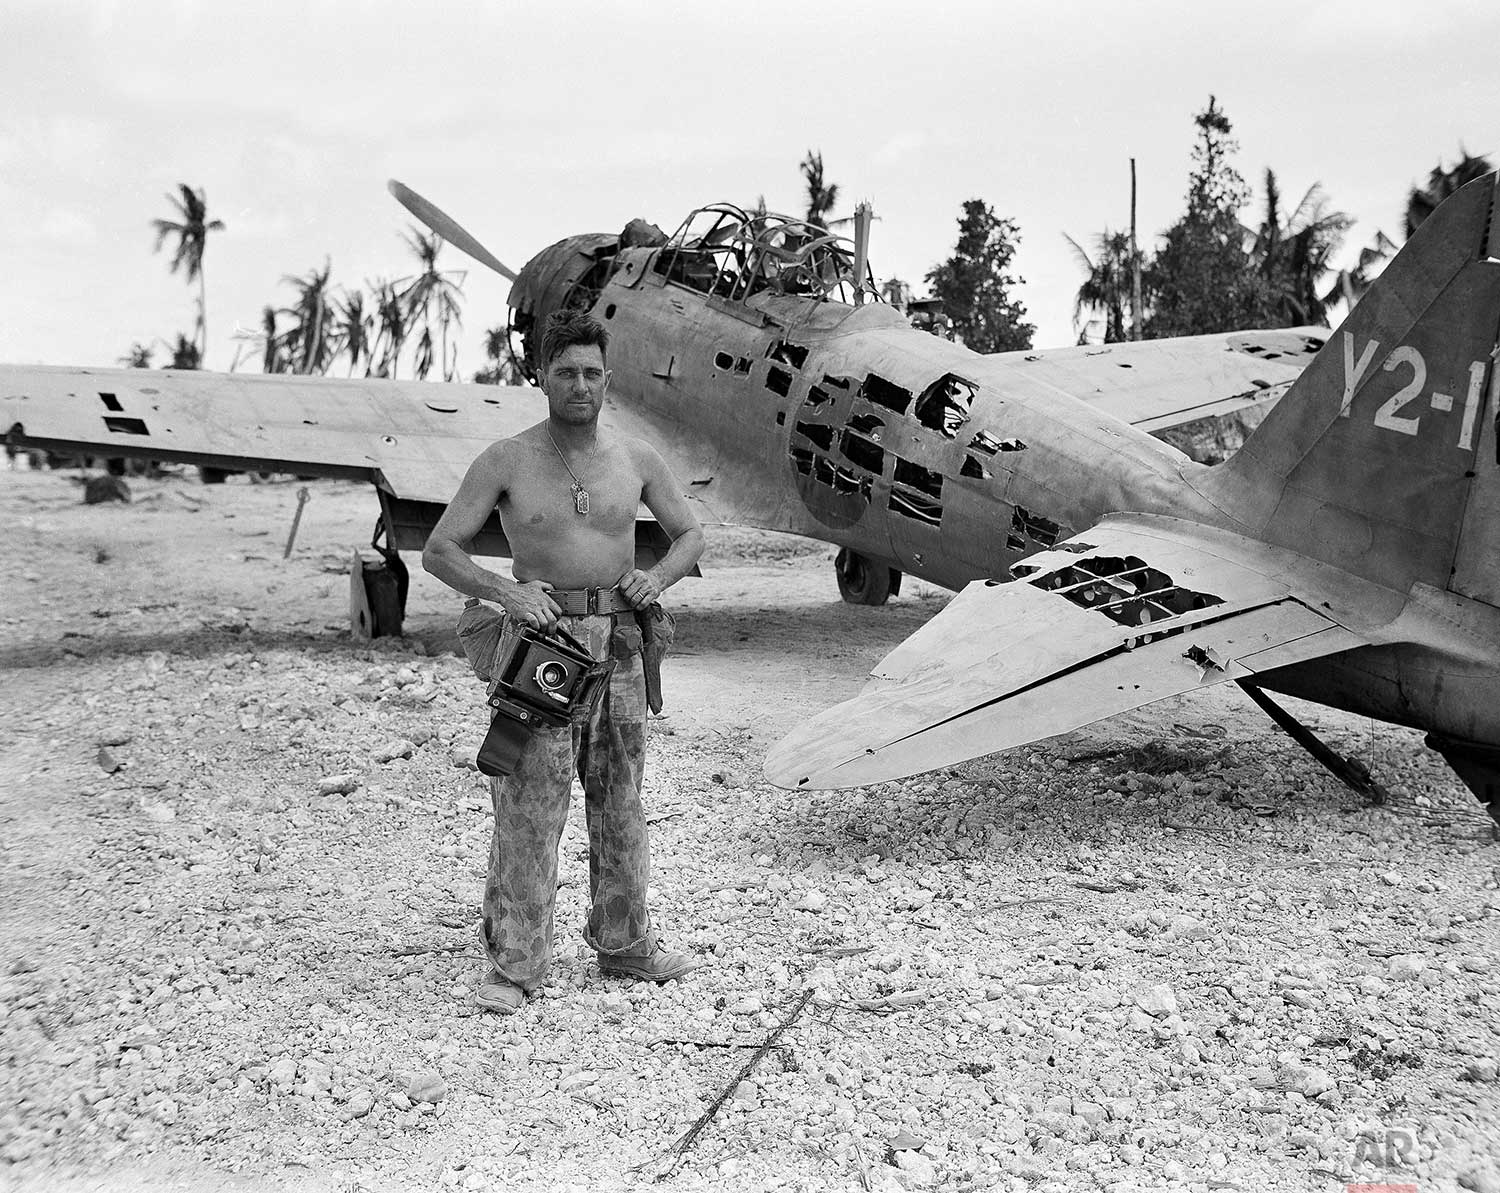 Frank Filan, Associated Press photographer on assignment with wartime still photographer pool, who did his shooting in the American invasion of Tarawa in the Gilberts with a borrowed camera after his camera was lost going ashore with the first Marine wave on November 21, stands near a bullet-riddled plane on the airfield at Tarawa, Dec. 6, 1943. (AP Photo/Frank Filan)